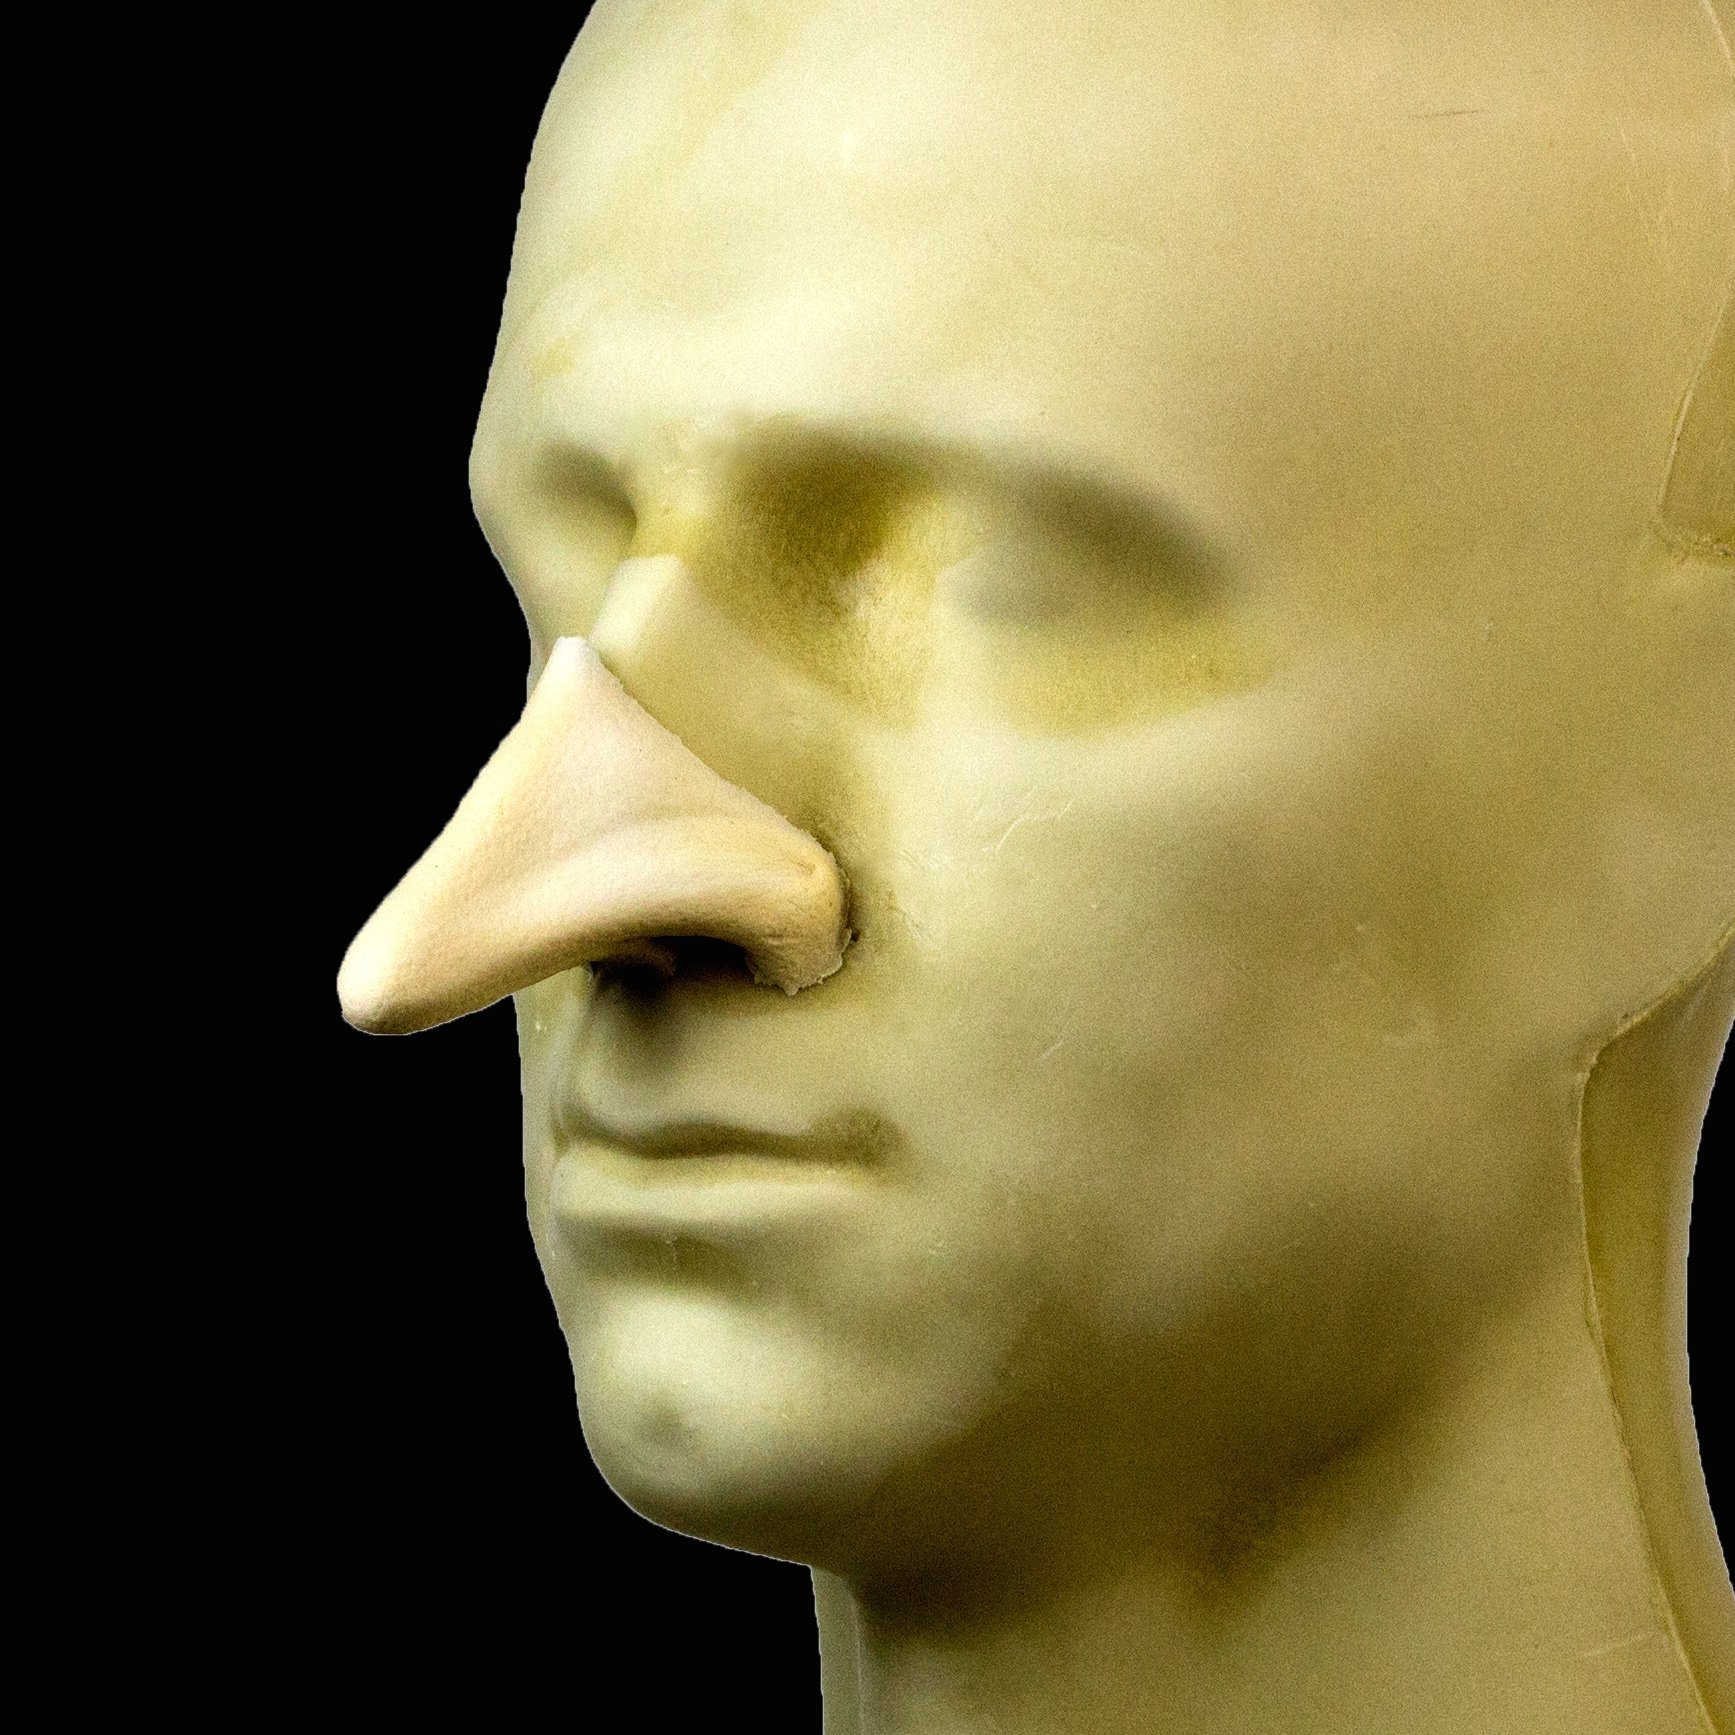 Rubber Wear Foam Latex Prosthetic - Large Cyrano Nose FRW-003 - Makeup and Theater FX